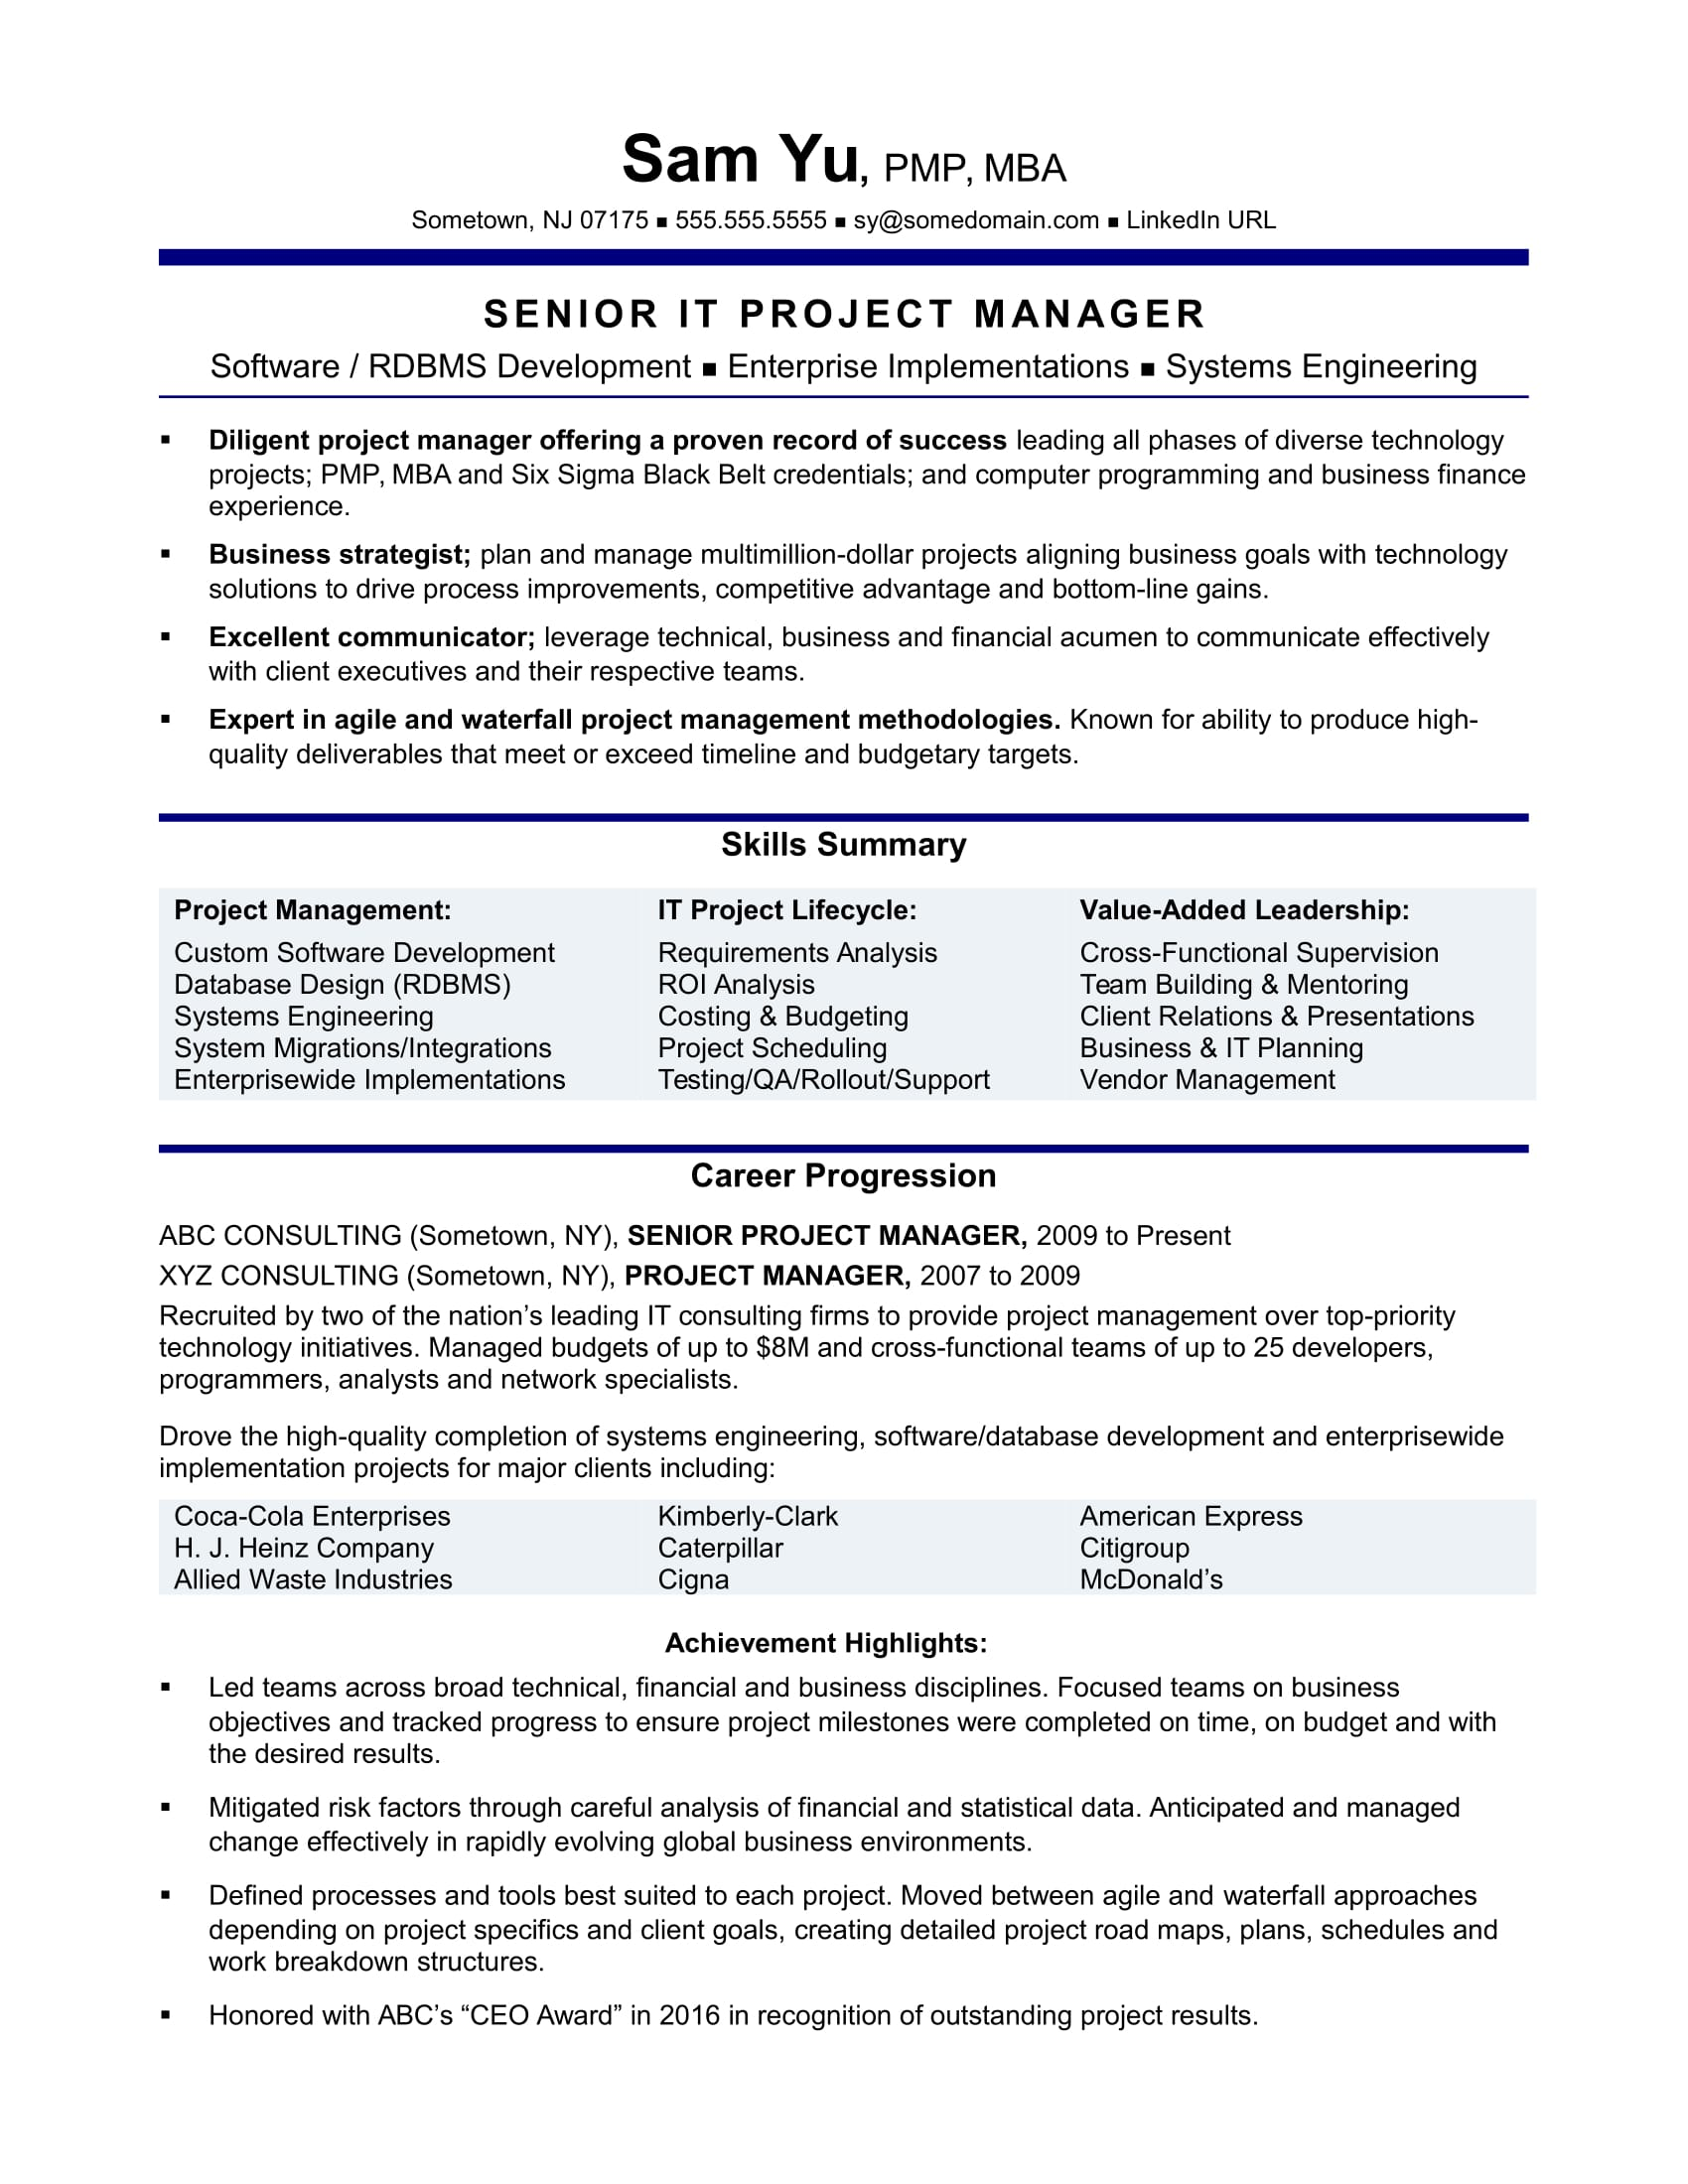 Experienced IT Project Manager Resume Sample  Pharmacy Manager Resume